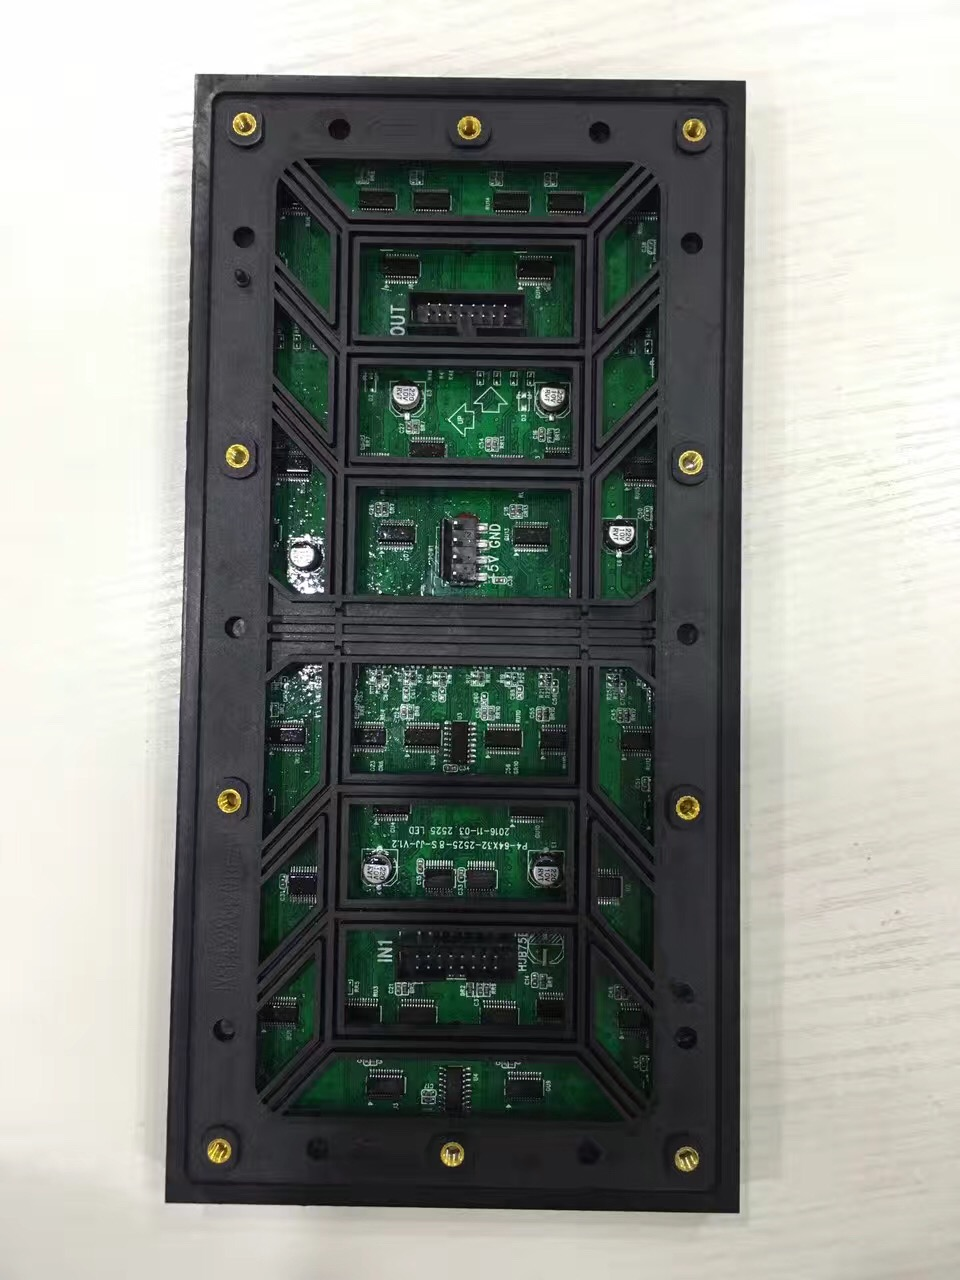 256x128 mm P4 outdoor SMD led display module